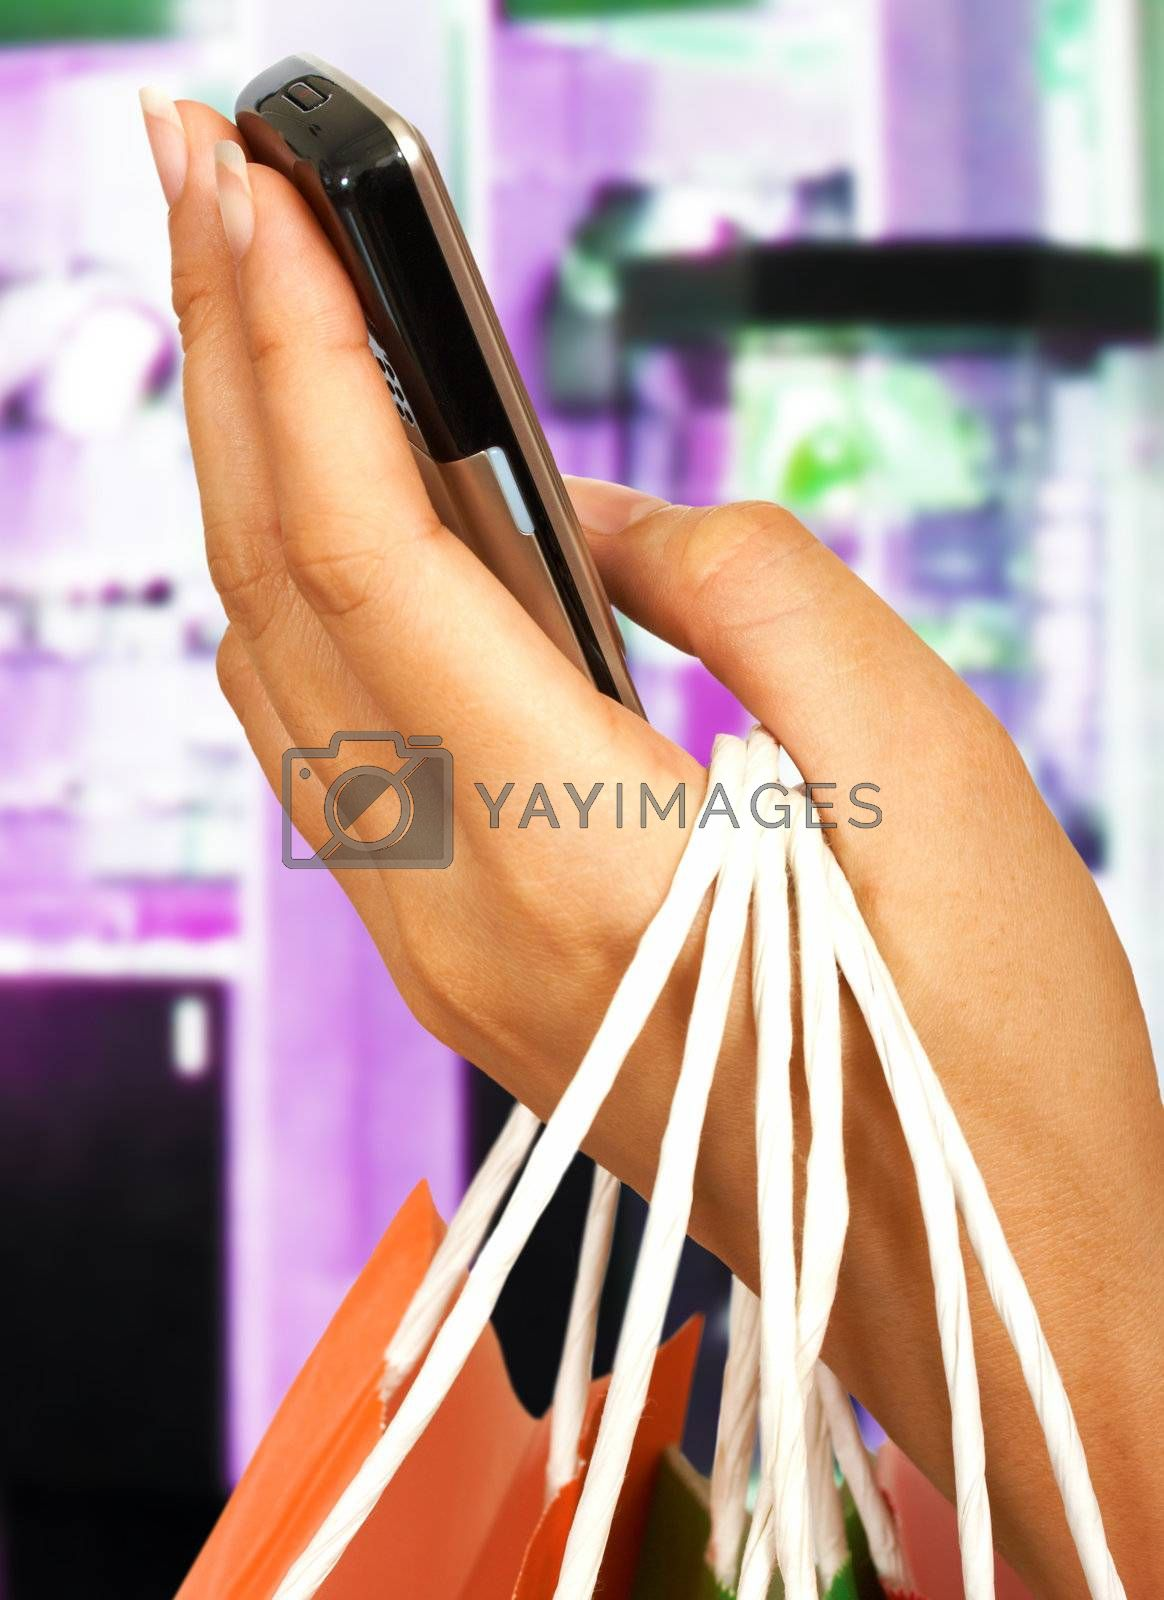 Holding A Mobile Phone And Shopping Bags In Front Of A Jewelry Store